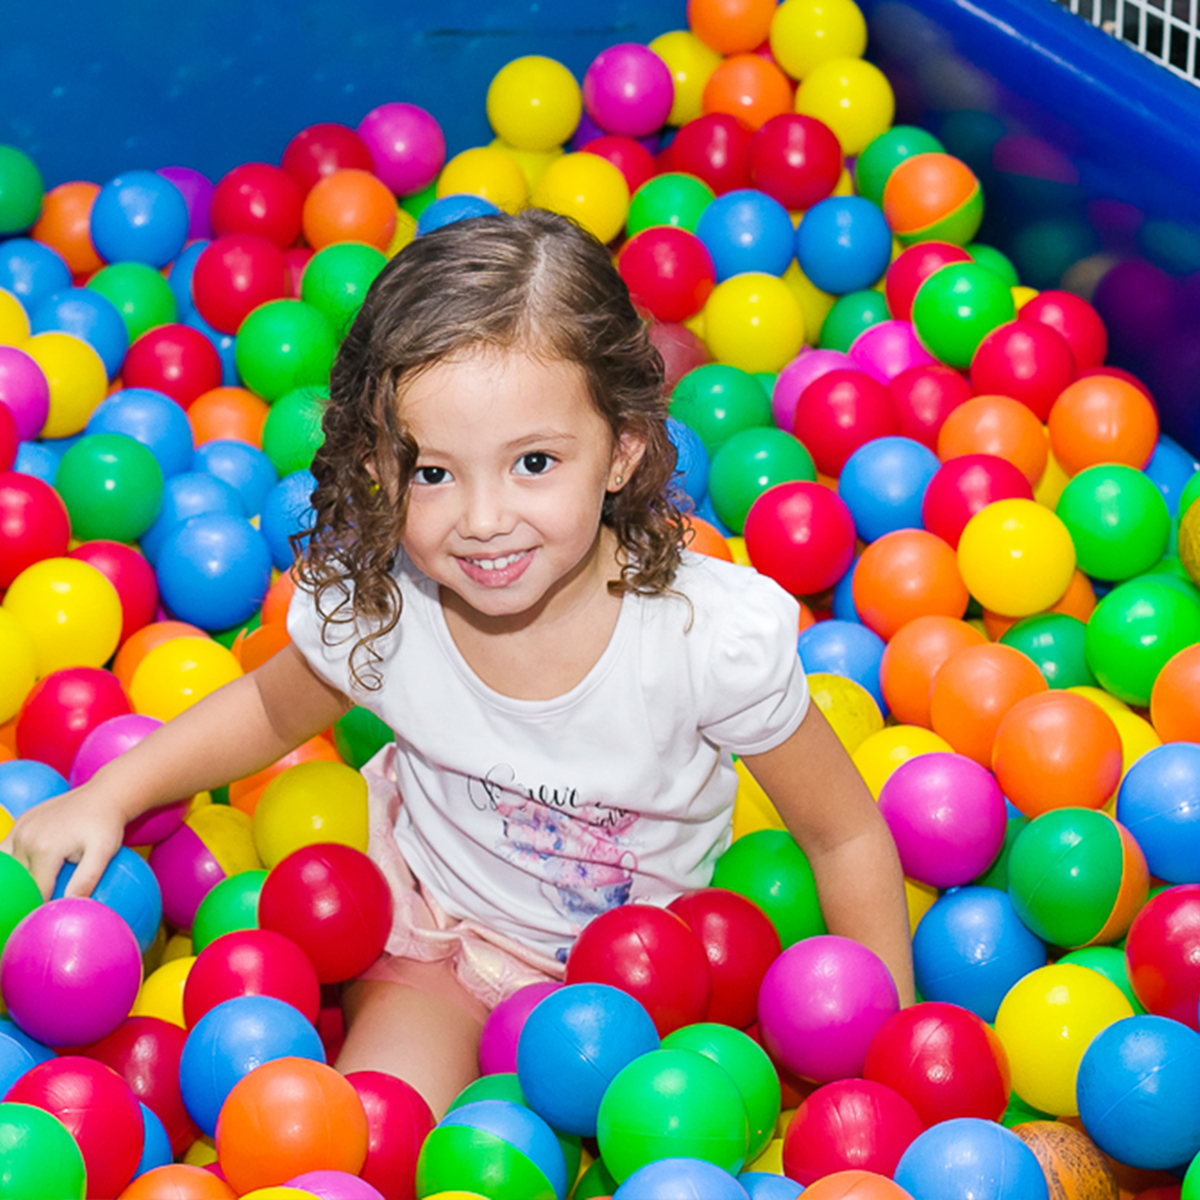 4cm/5.5cm Colors Baby Plastic Balls Water Pool Ocean Wave Ball Kids Swim Pit With Basketball Hoop Play House Outdoors Tents Toy